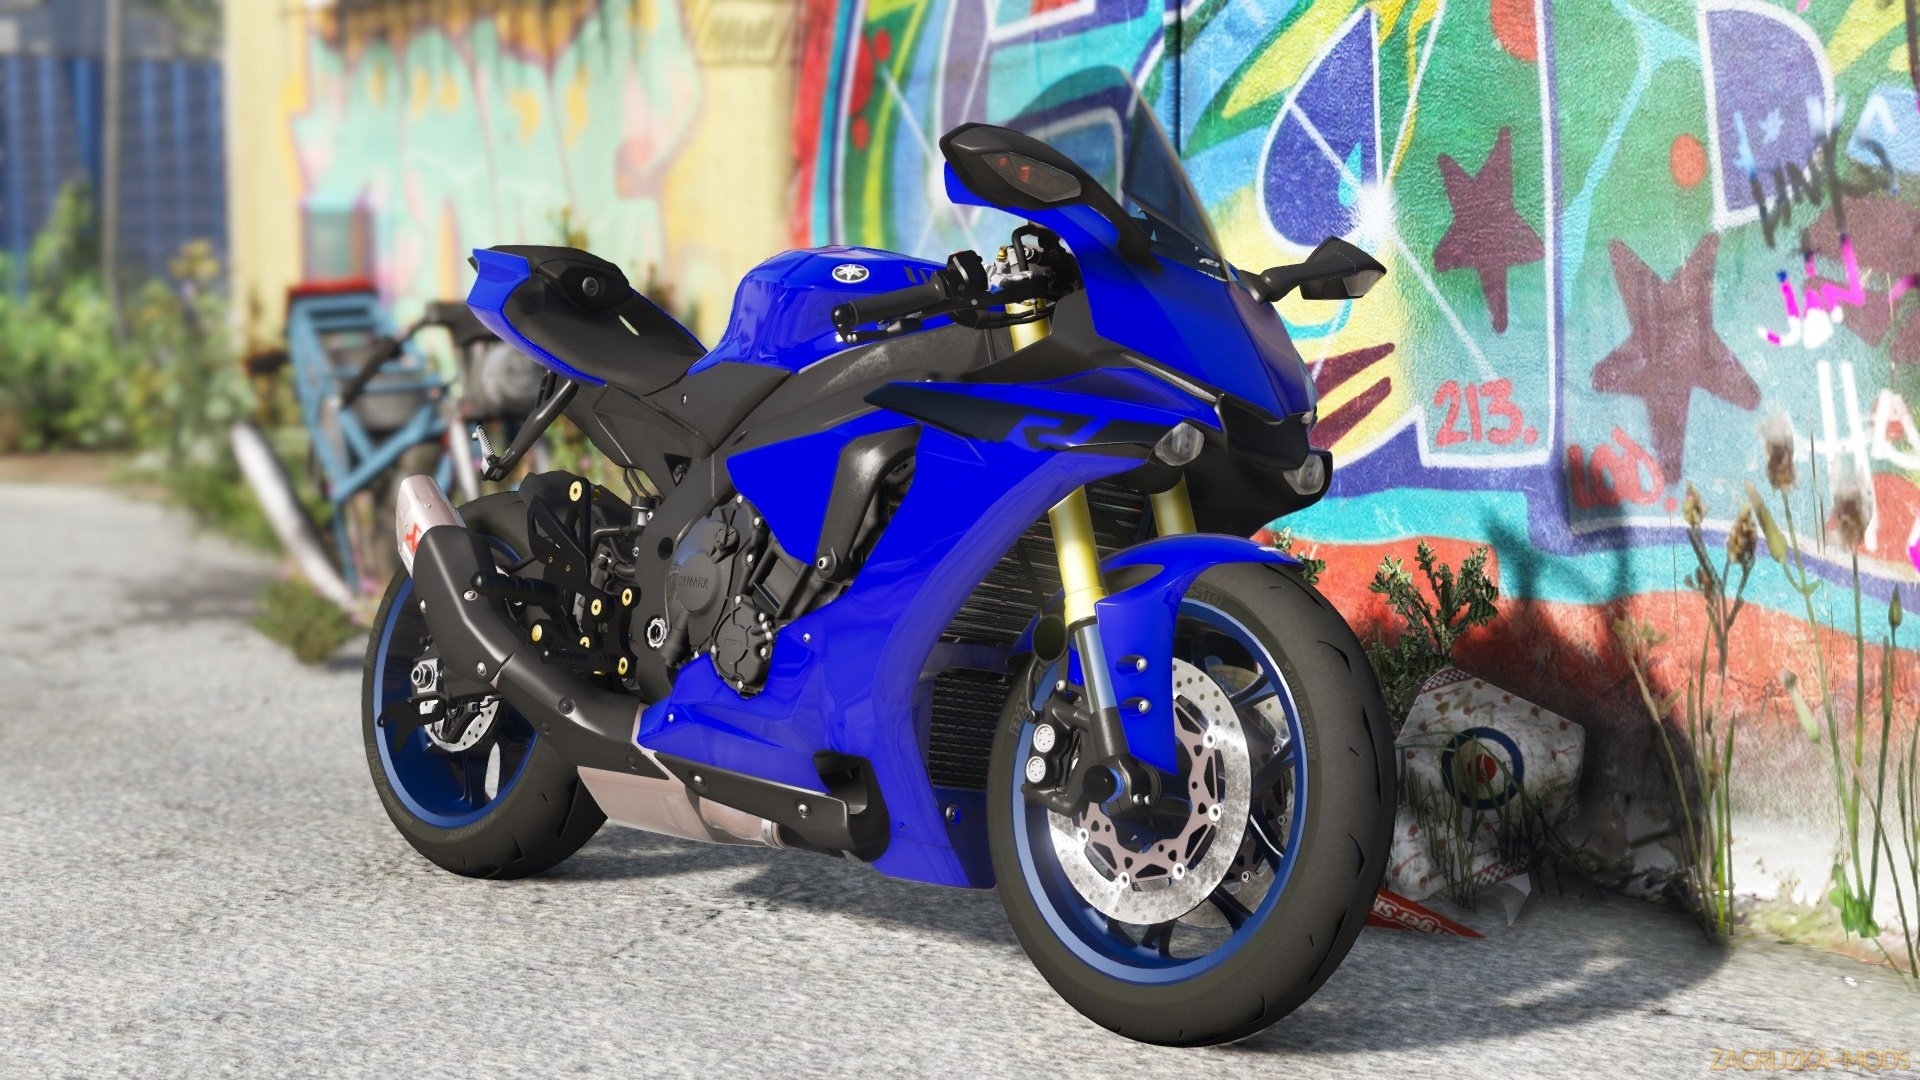 Yamaha YZF-R1/R1M 2018 v1.0 for GTA 5